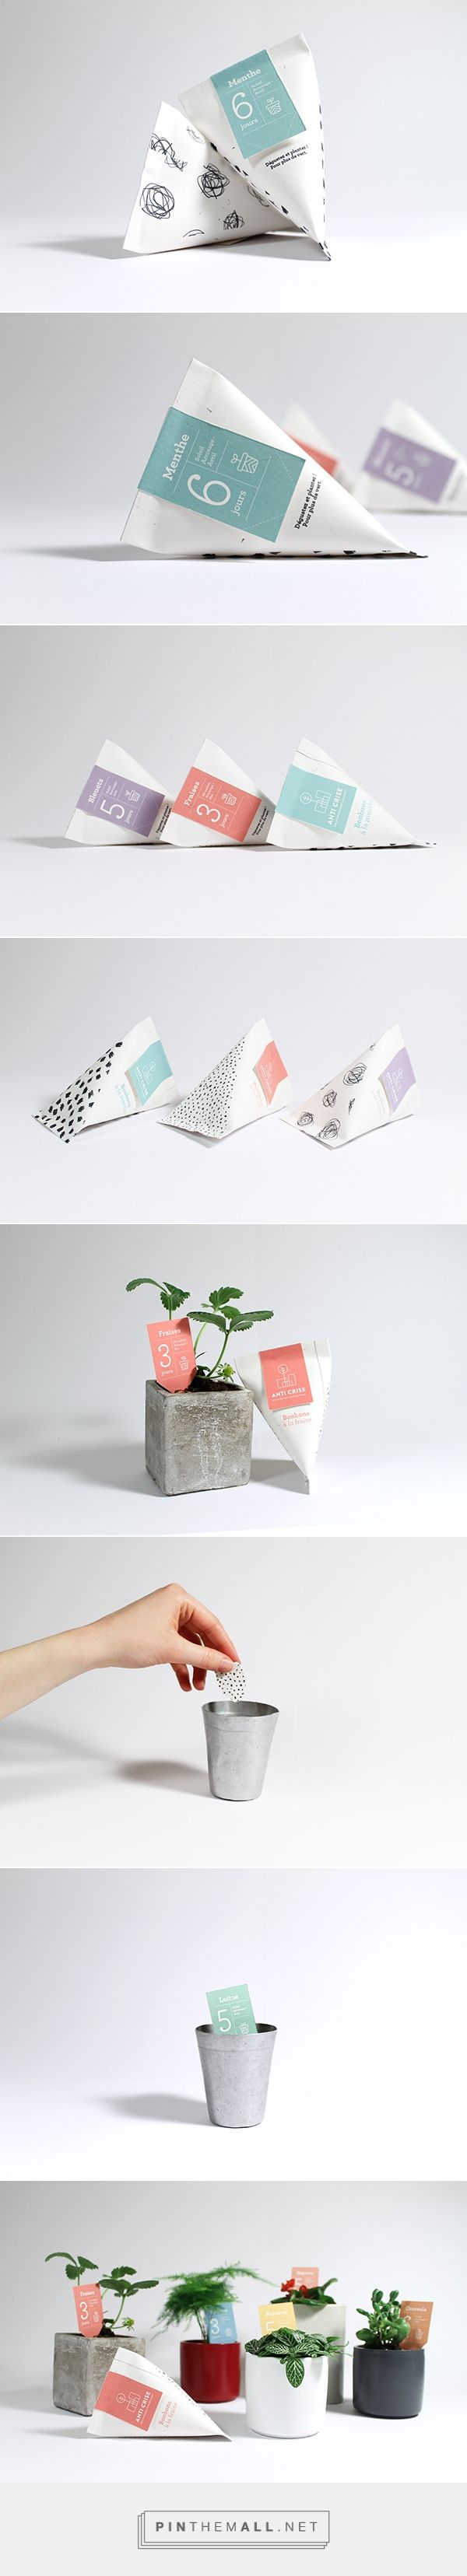 Anticrise / seeds packaging